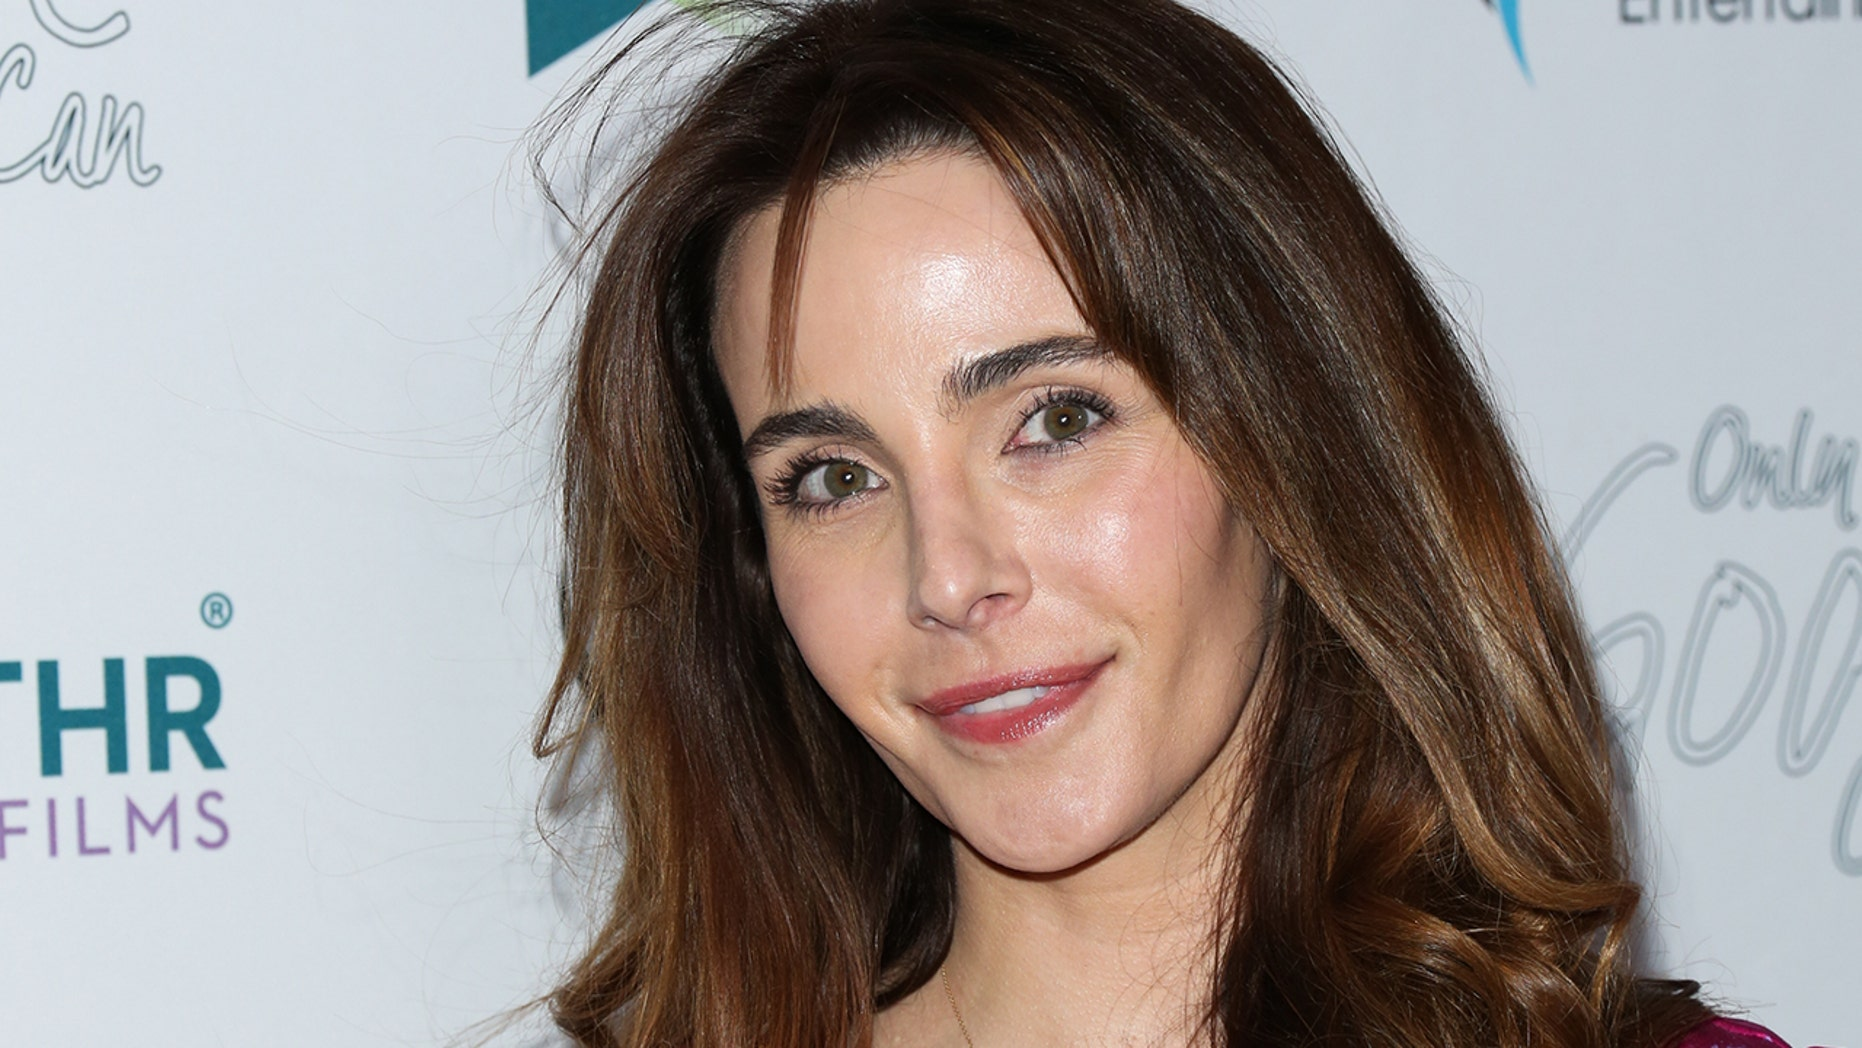 Actress Lisa Sheridan reportedly died in her New Orleans home at age 44.